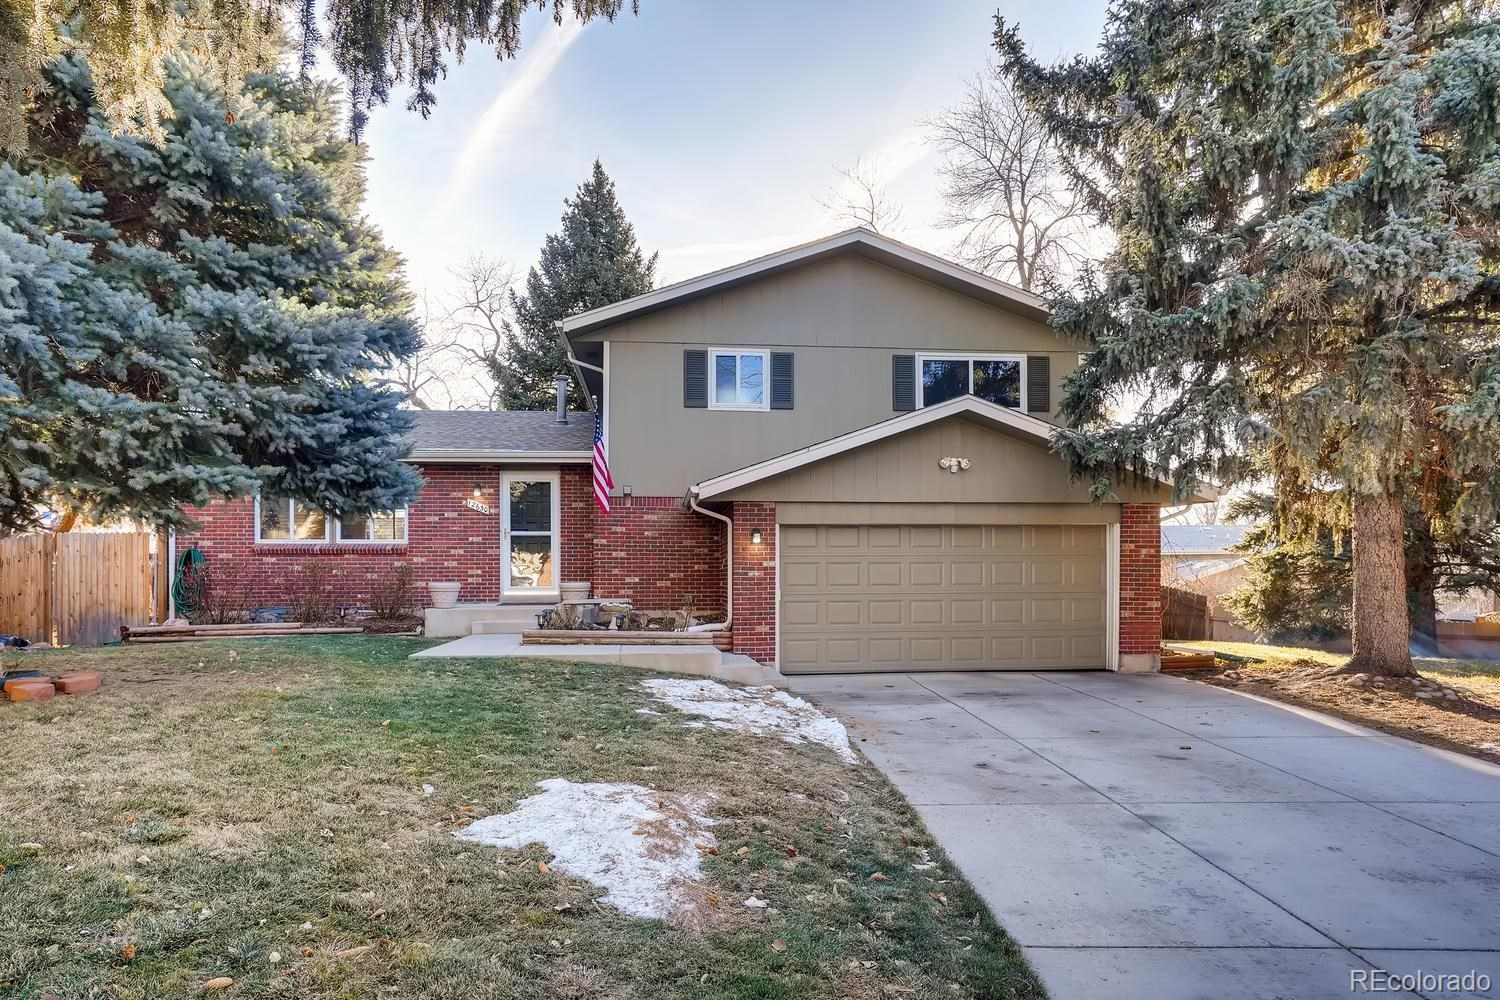 MLS# 8480812 - 1 - 12630 W 67th Place, Arvada, CO 80004